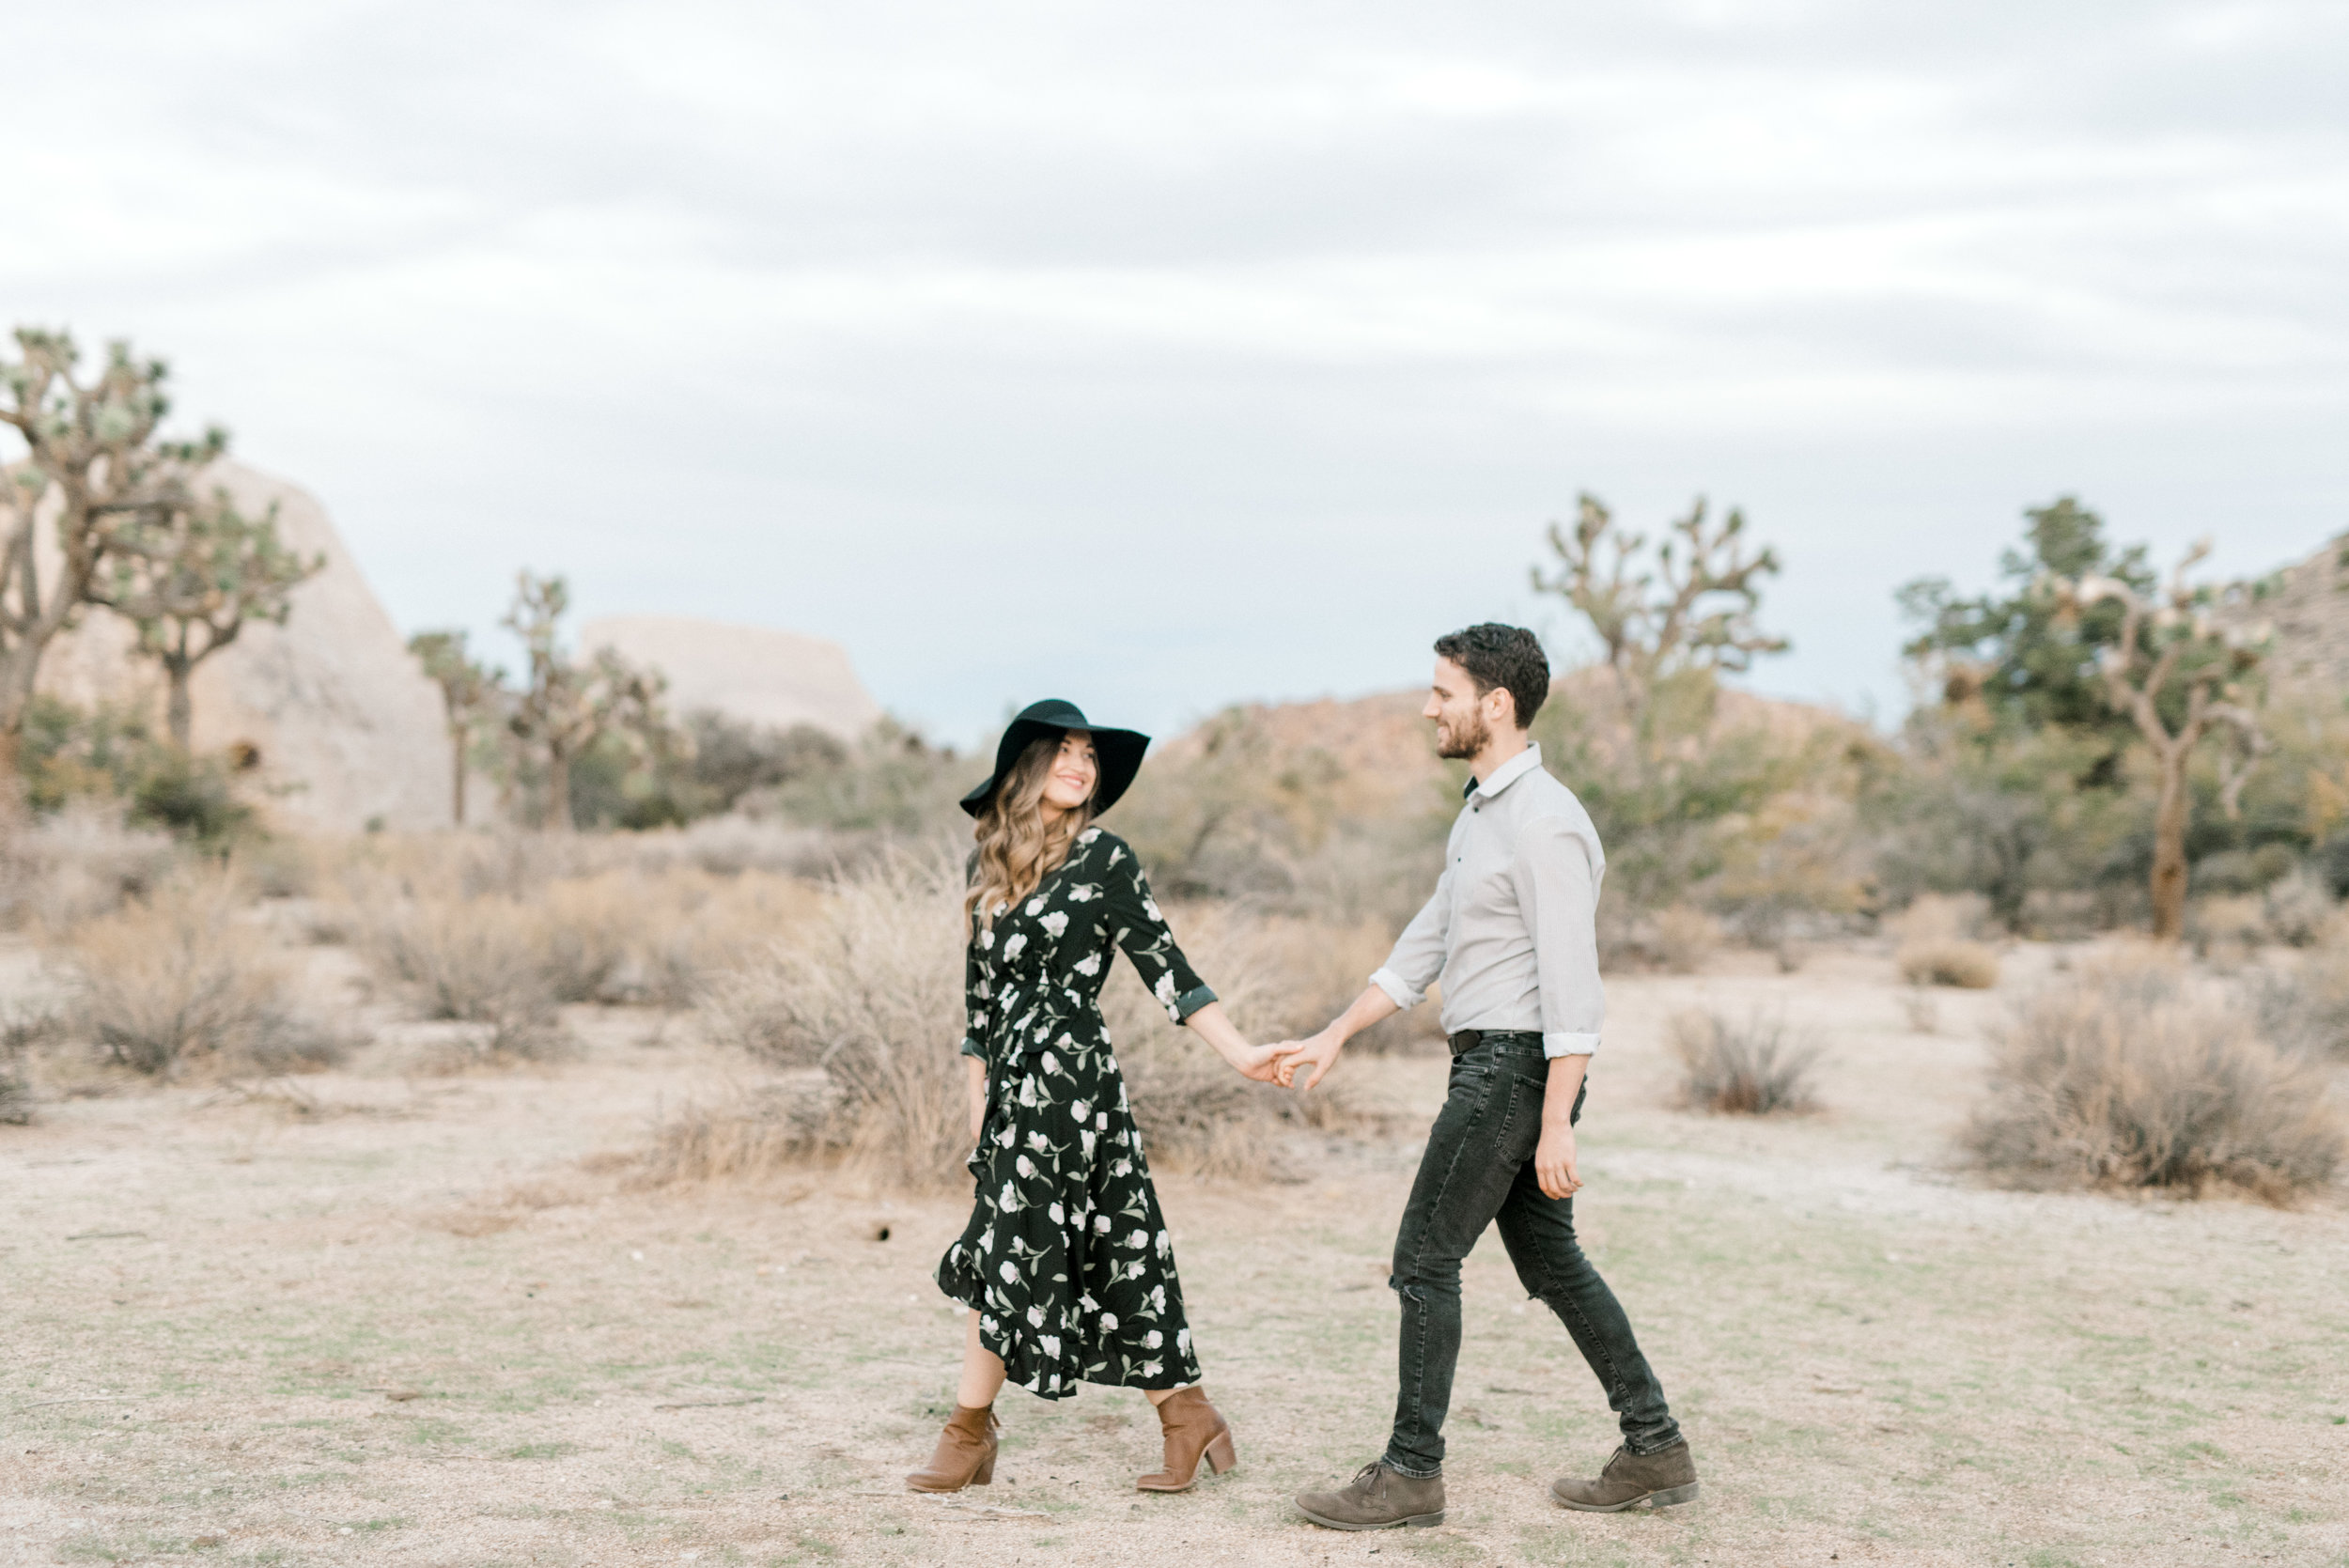 Follow me to forever, we are digging the boho vibes with this floral dress and floppy from Jenna and Sam's free-spirited desert engagement session in Joshue Tree